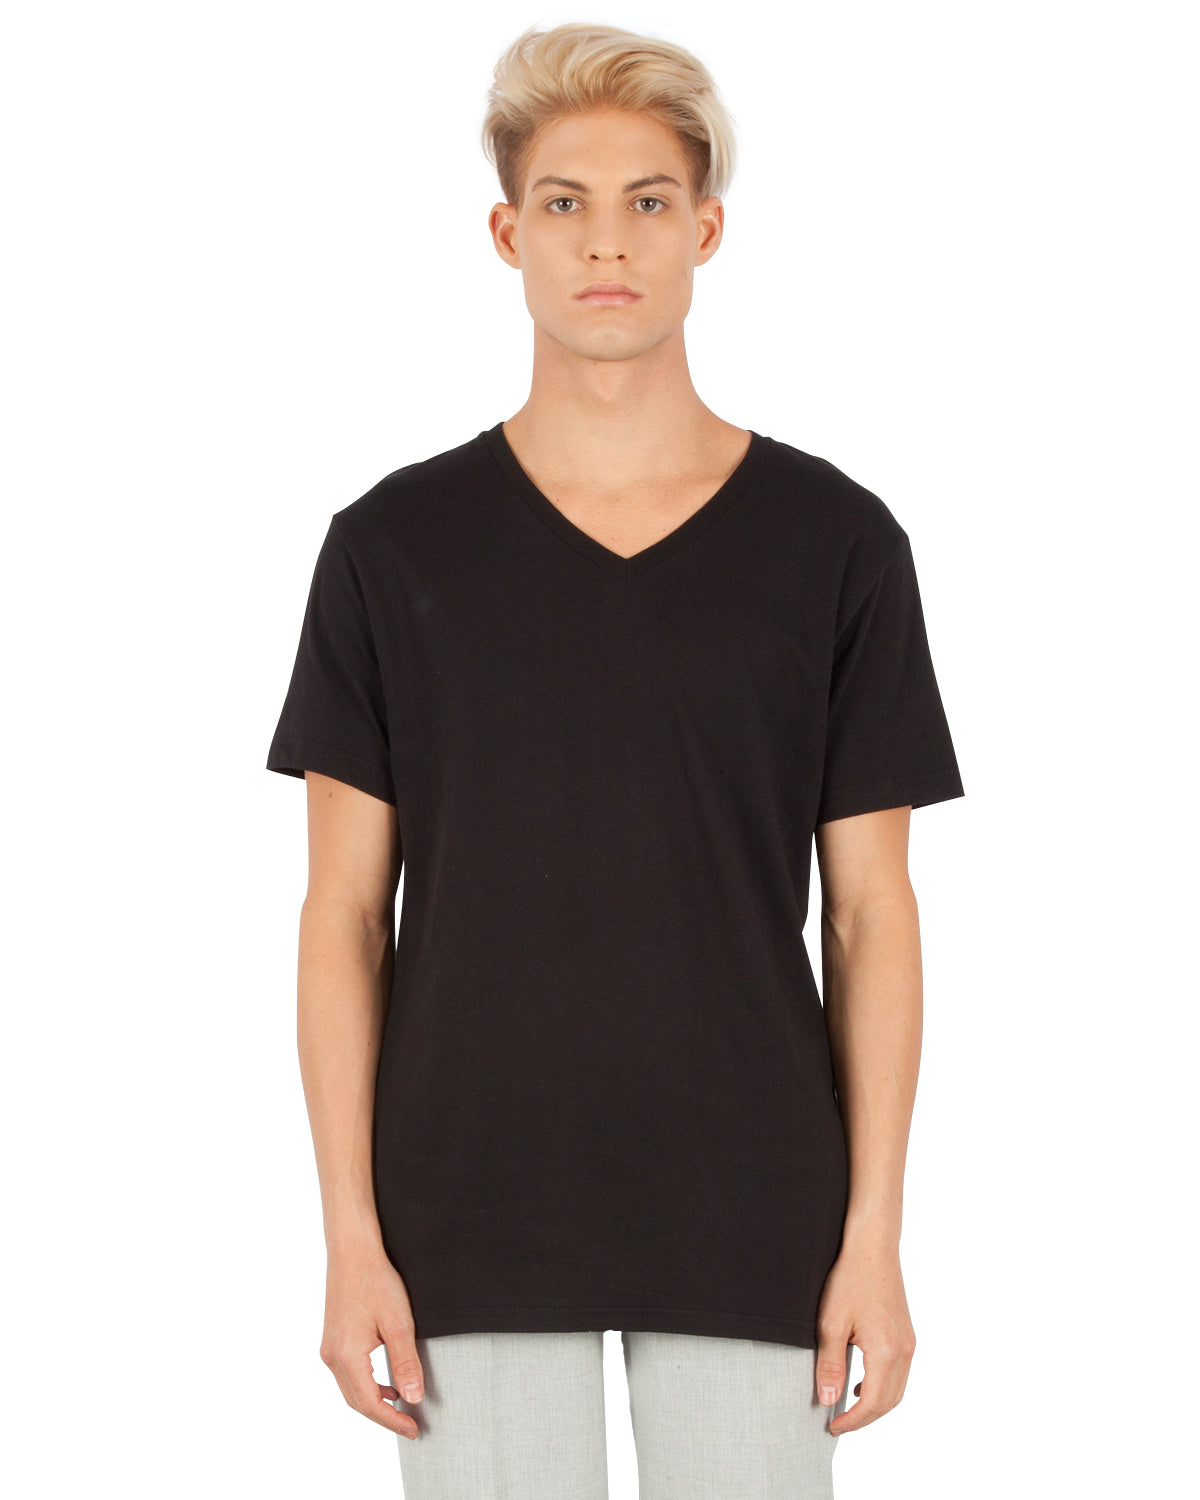 1320 Combed Cotton V-Neck